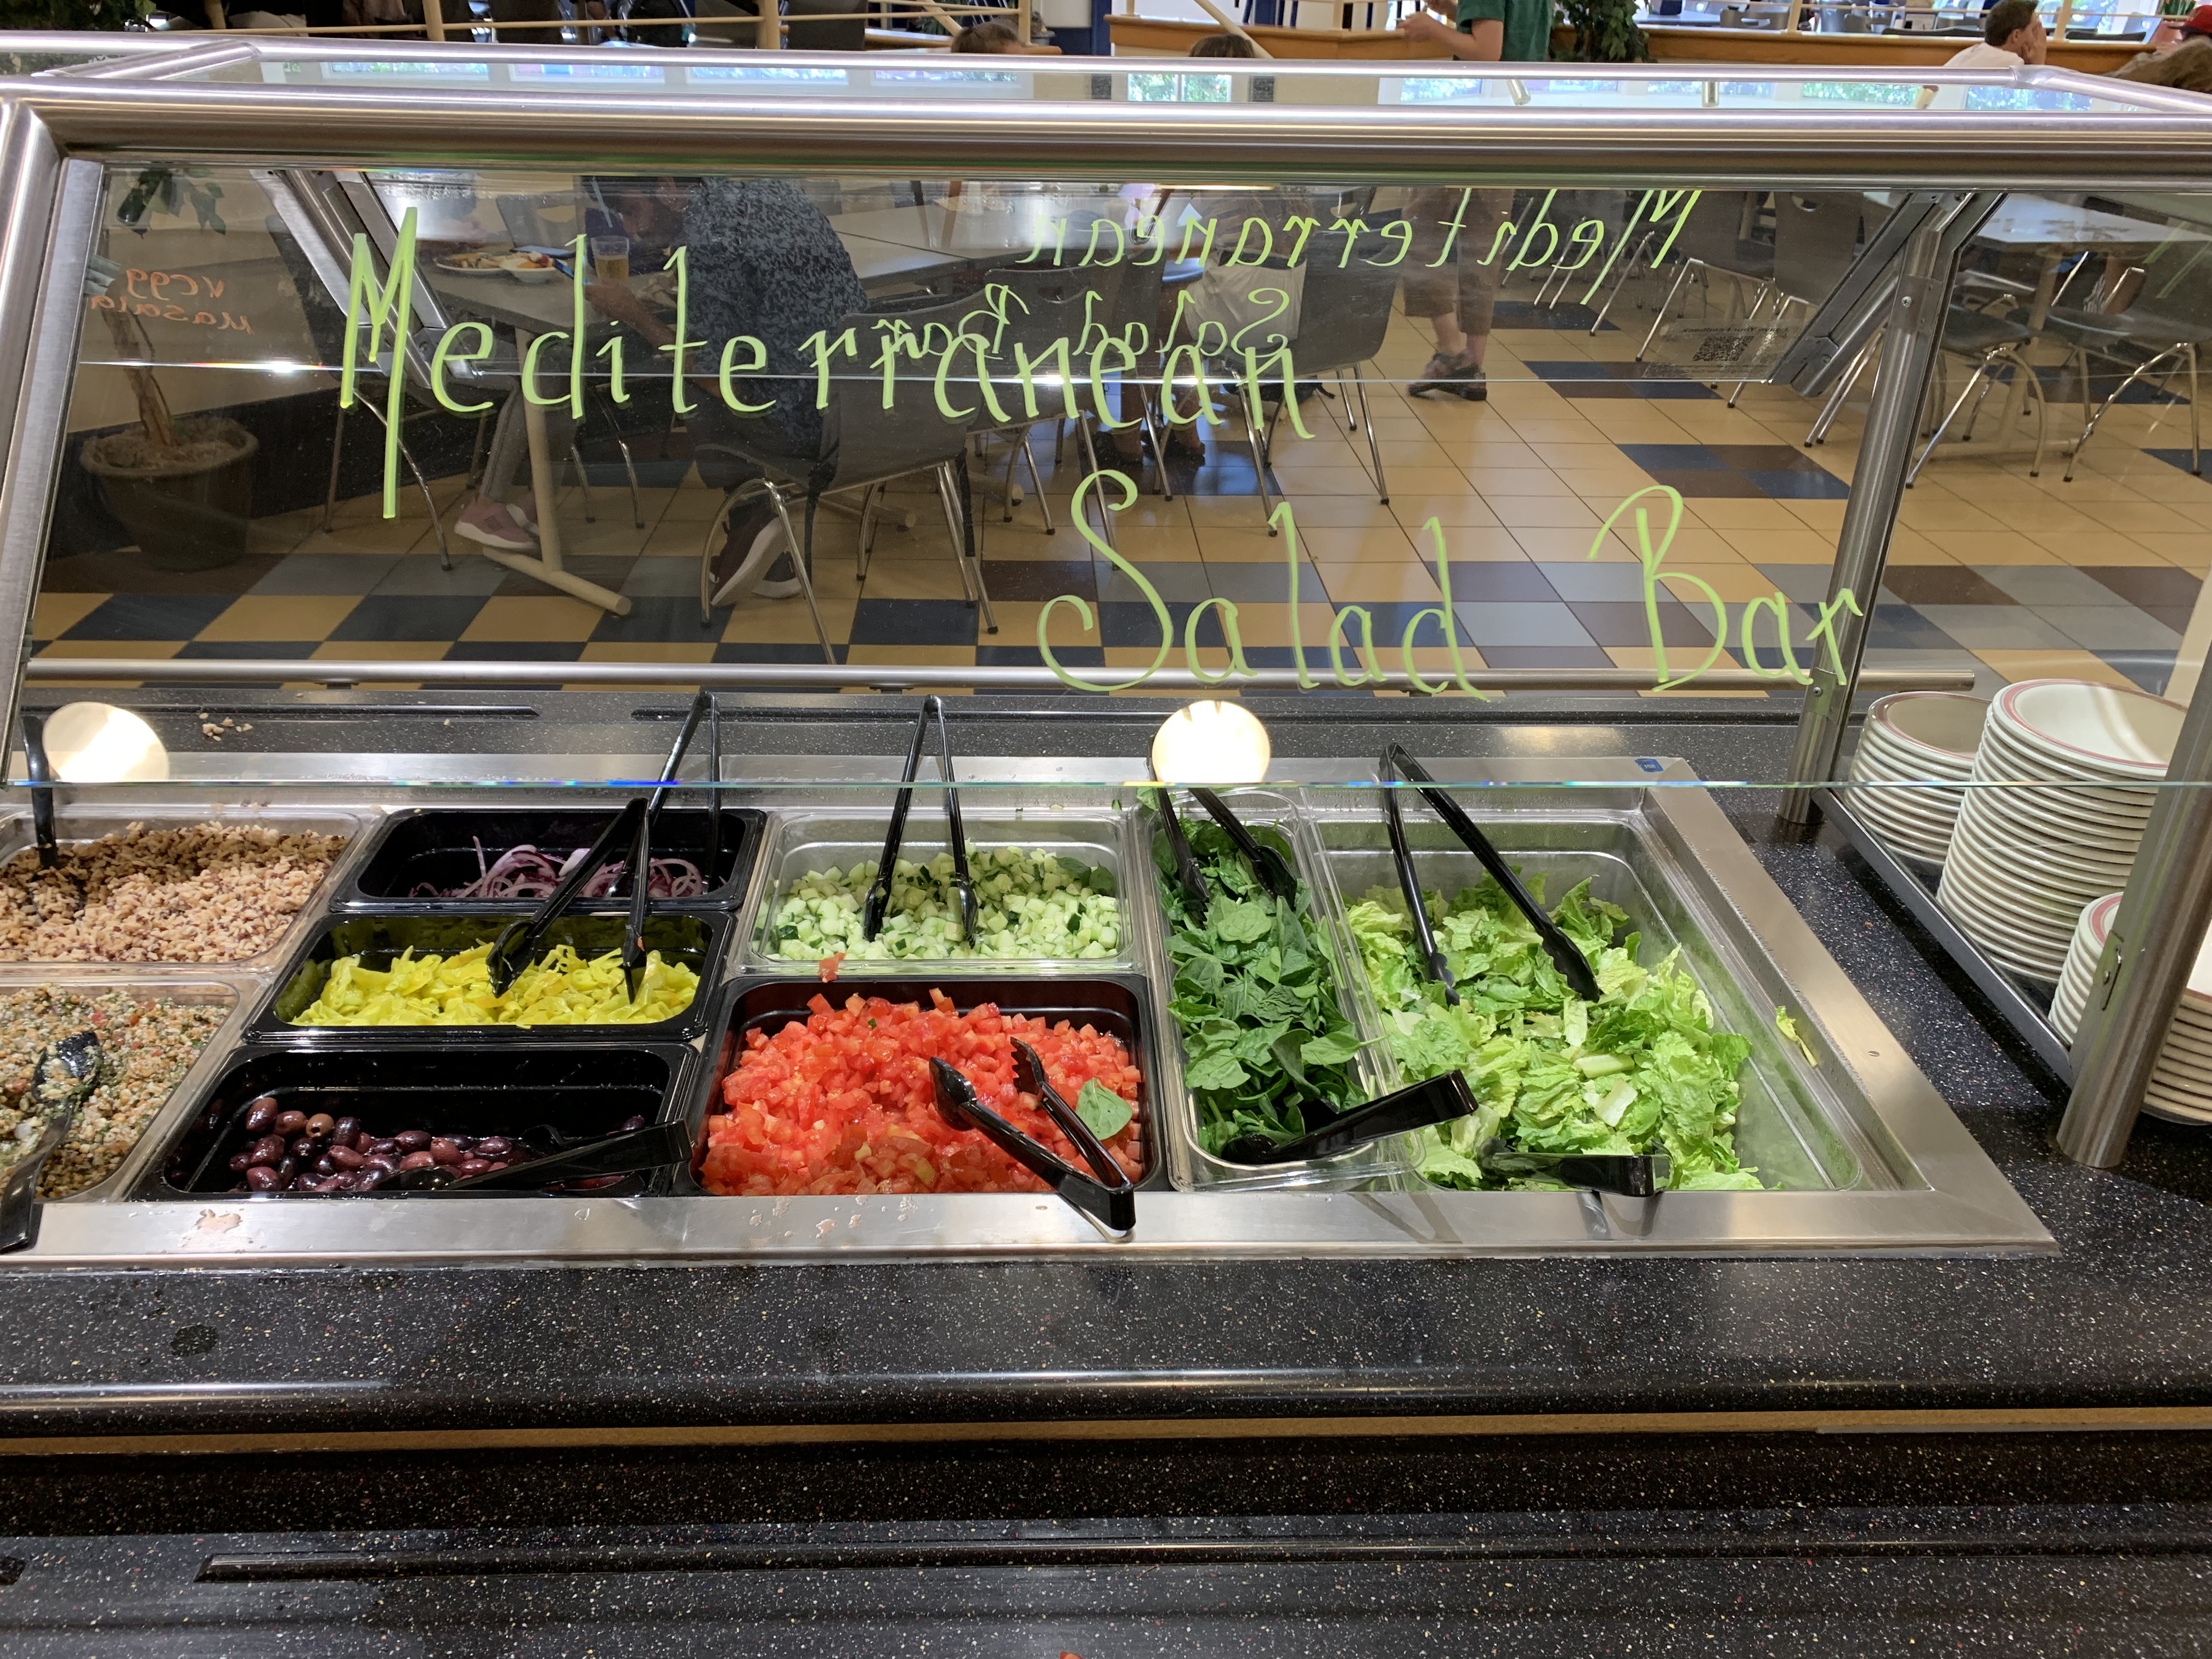 Smart Eats's Mediterranean salad bar features a wide variety of fruits and vegetables, along with other nutritious toppings (Photo Phoebe Doscher/The Gettysburgian).